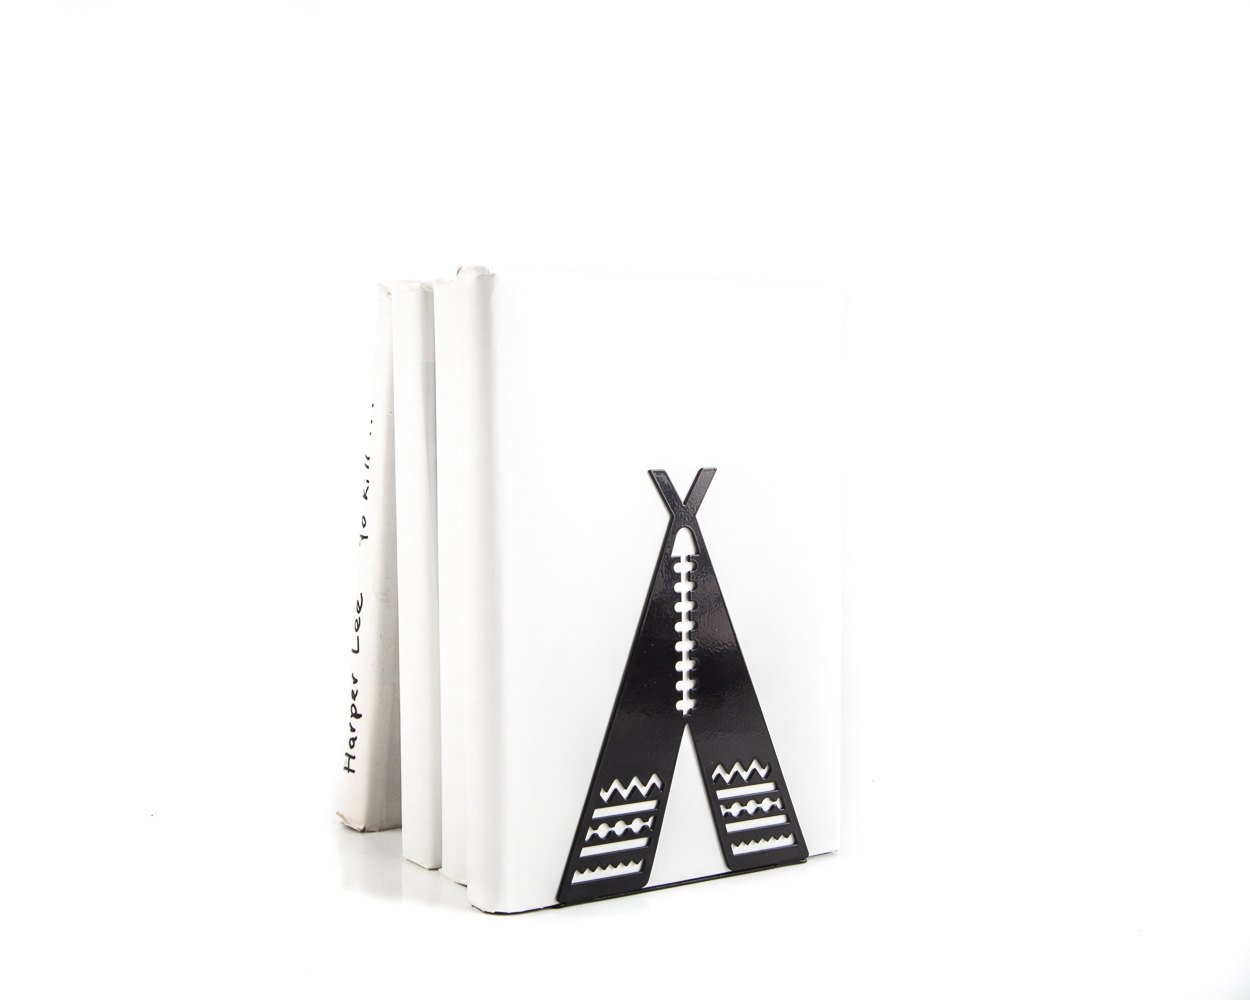 A Unique metal bookend // Tipi // Teepee  // functional decor for modern nursery // cookbook book holder // FREE SHIPPING worldwide /